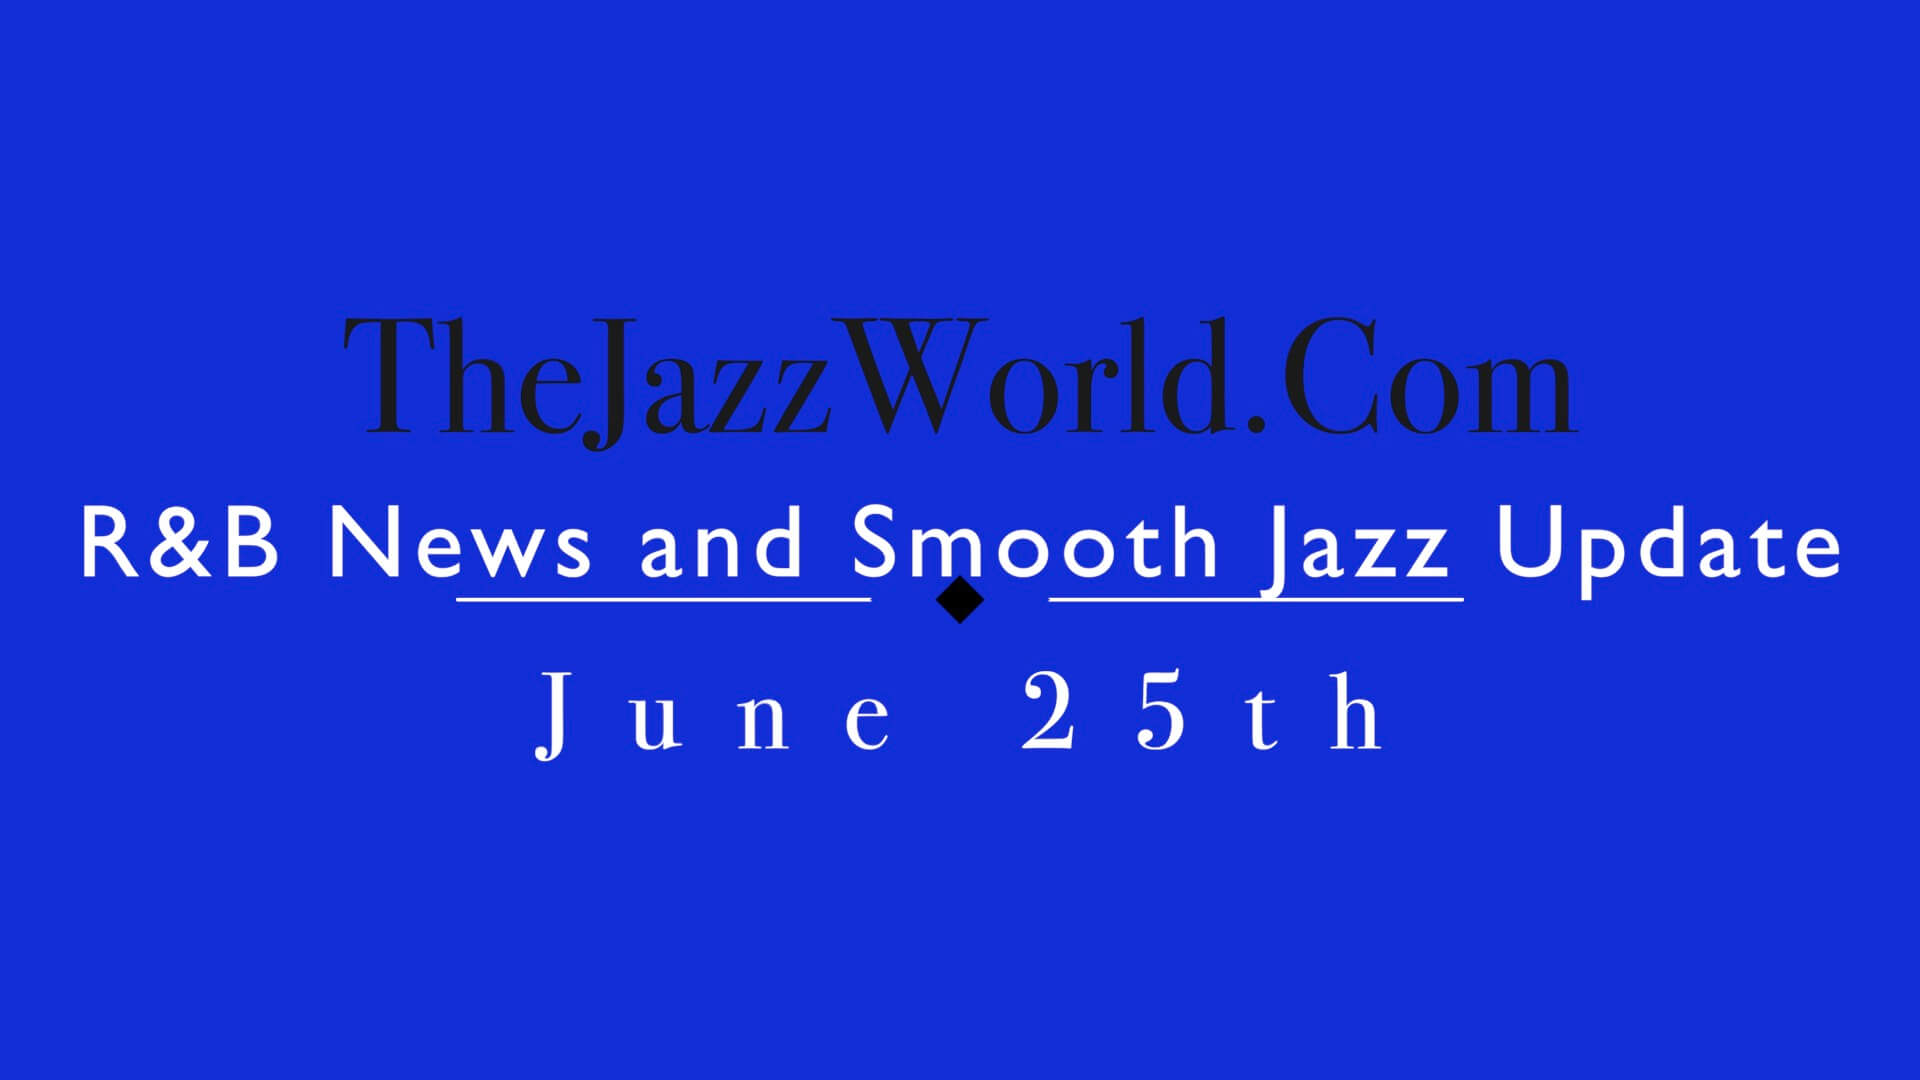 The Jazz World Show 6:25